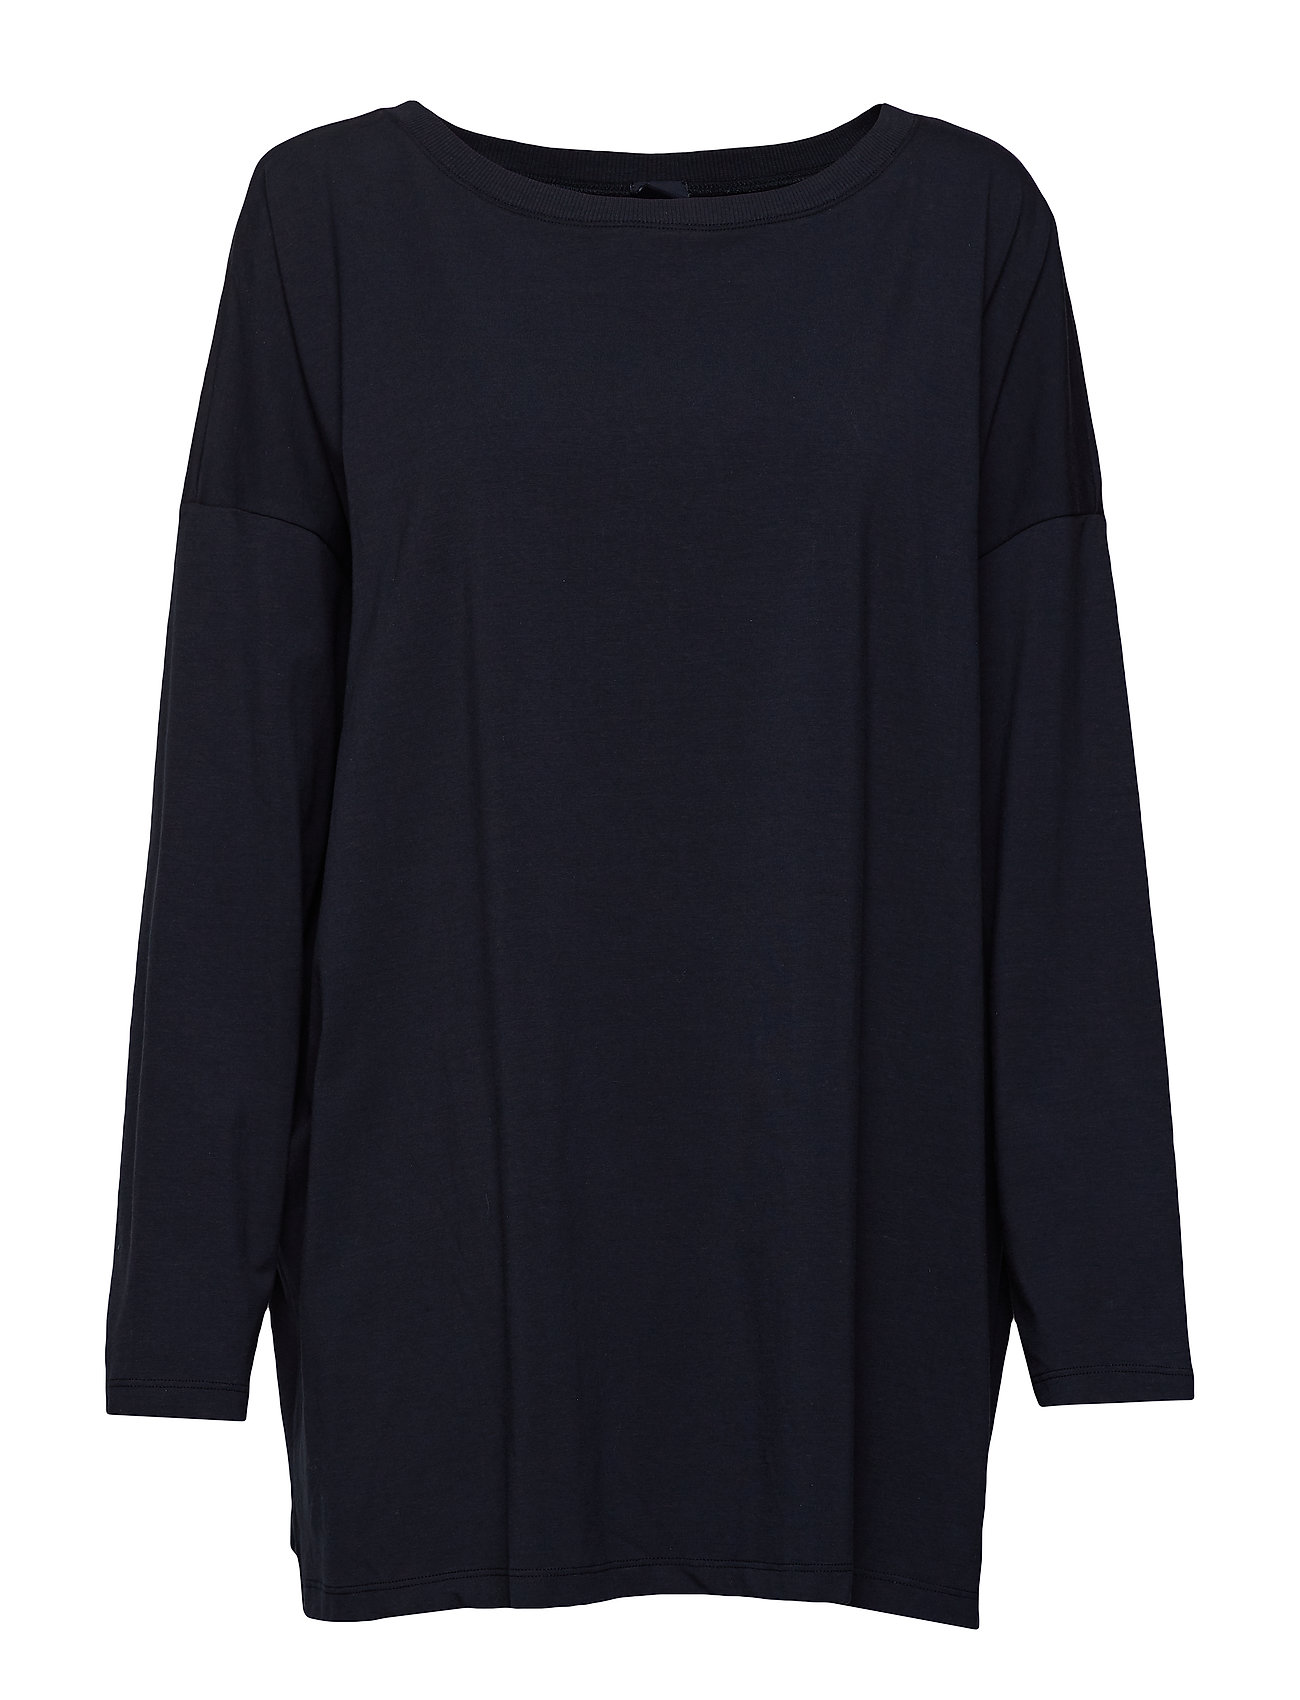 Max Mara Leisure JACOPO - NAVY KNITTED BLOUSE